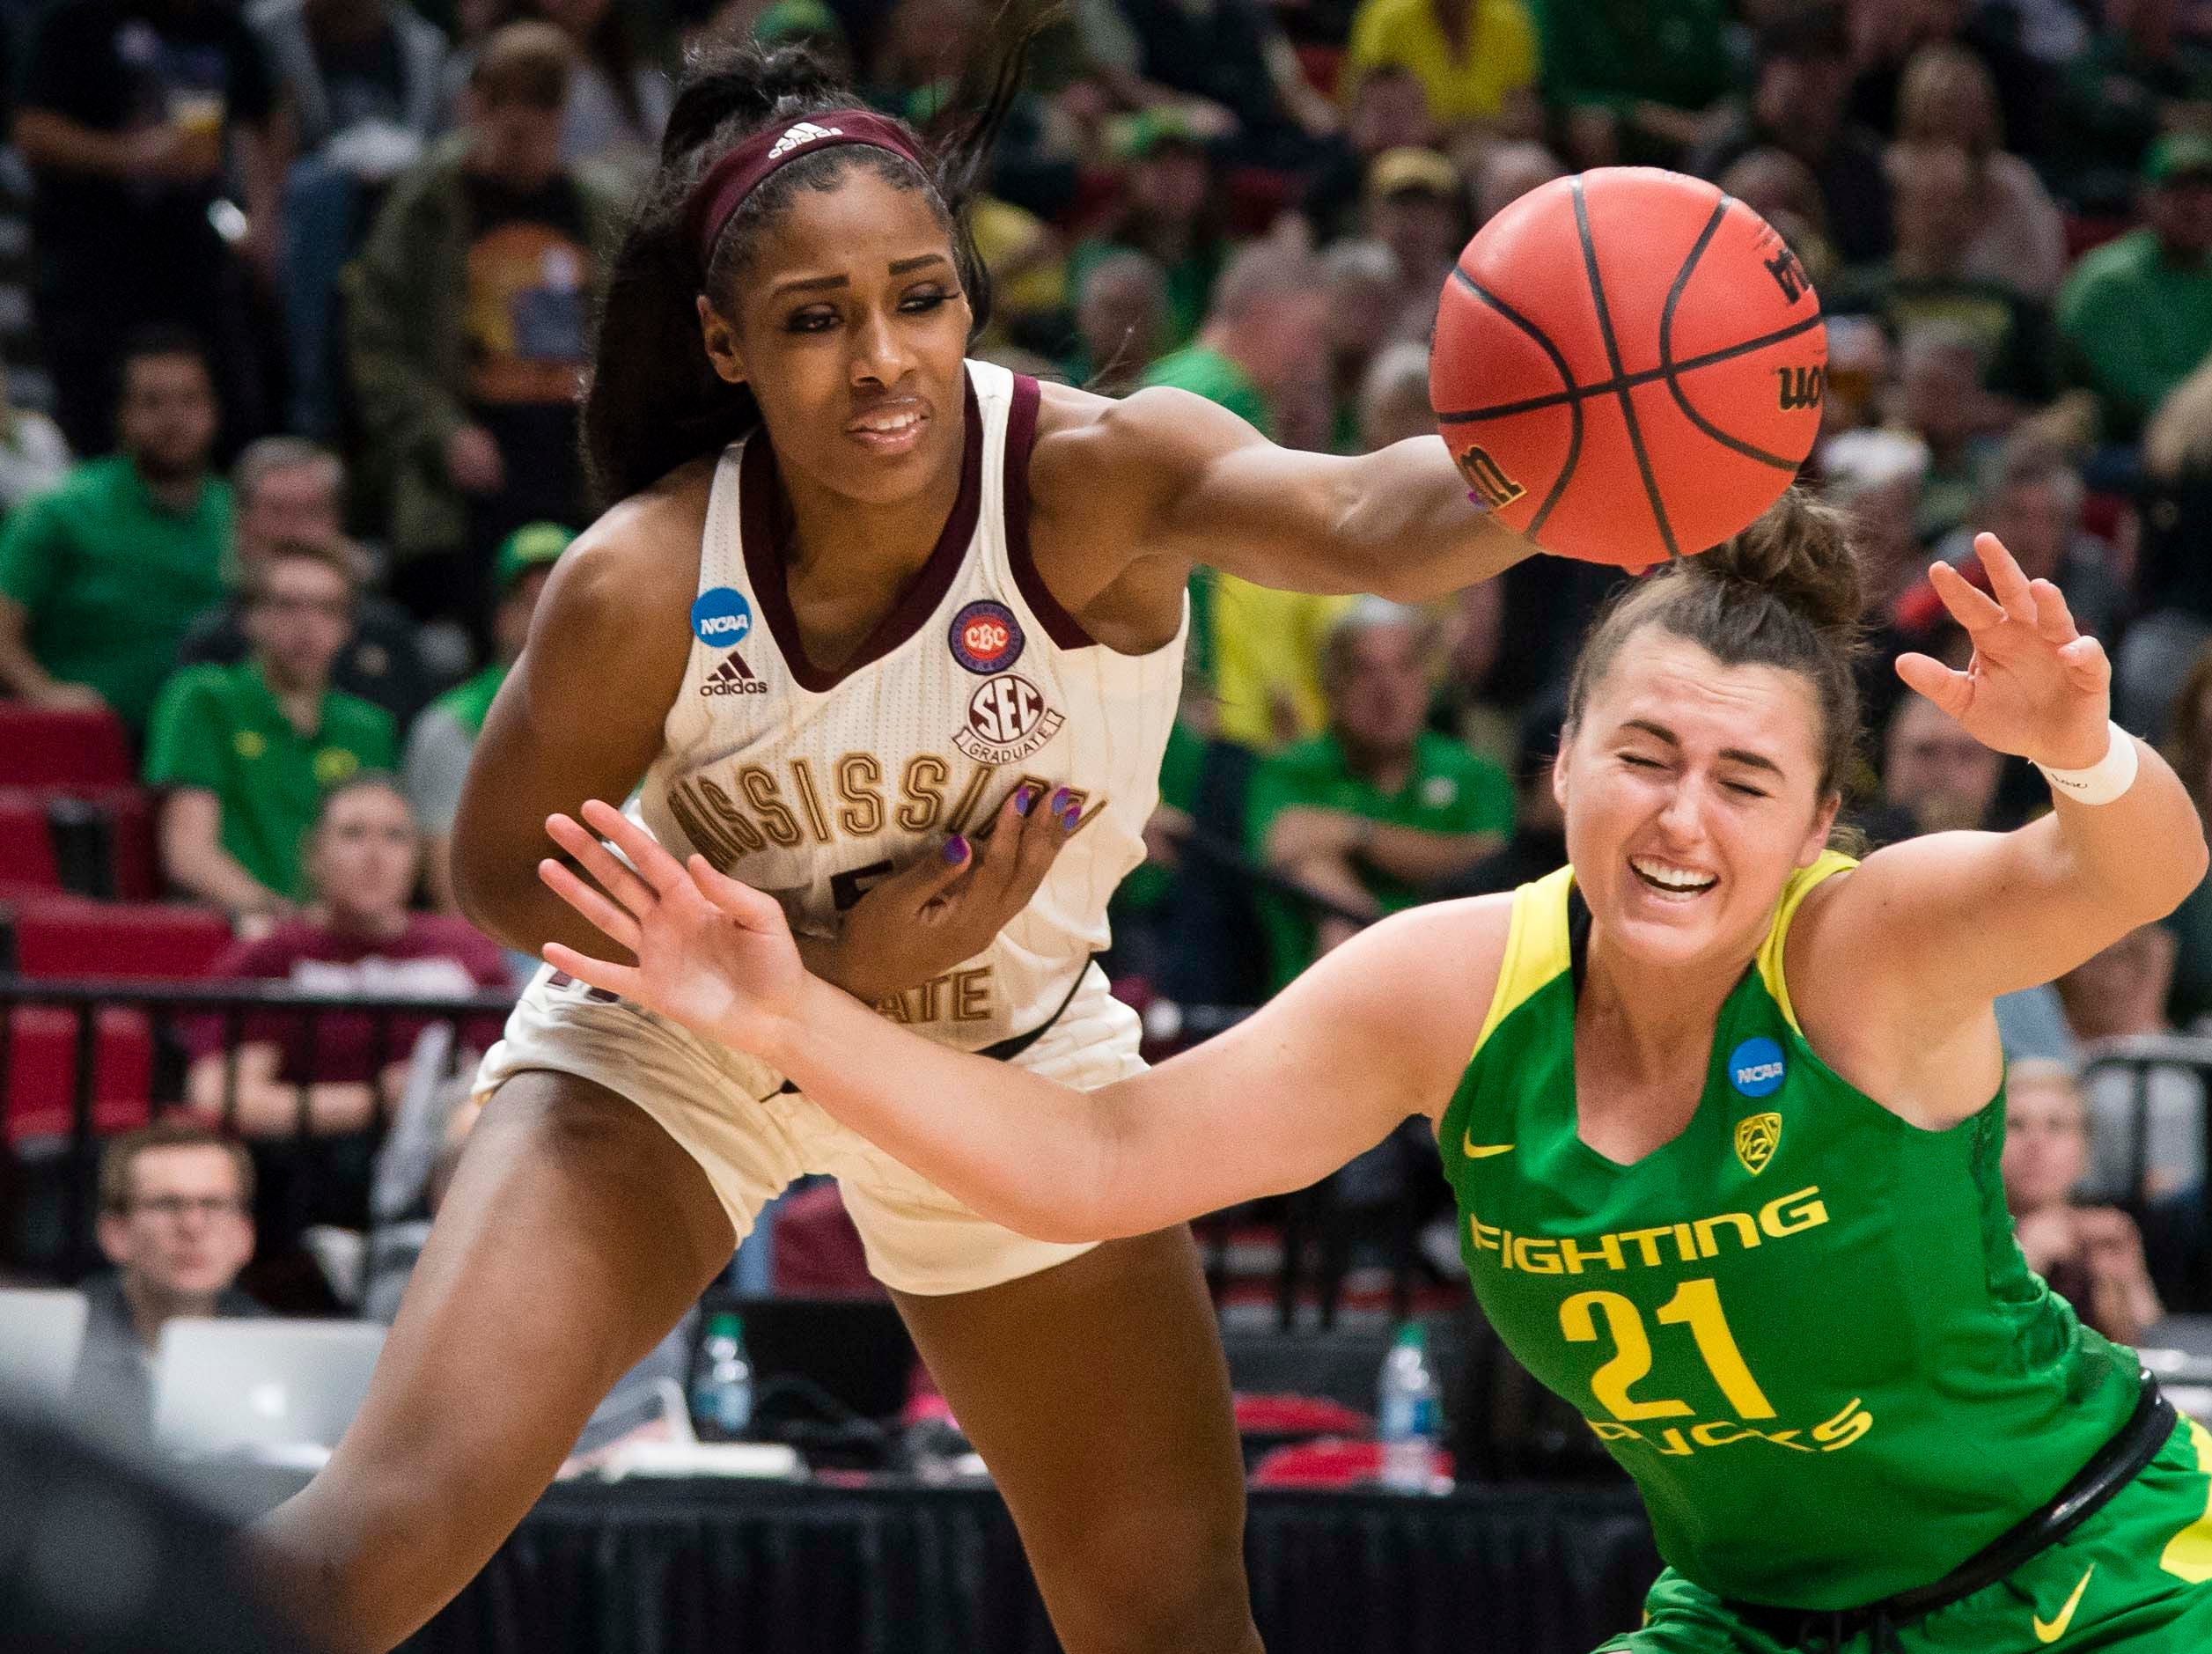 Mississippi State Bulldogs forward Anriel Howard (5) dives for a rebound against Oregon Ducks forward Erin Boley (21) during the second half in the championship game of the Portland regional in the women's 2019 NCAA Tournament at Moda Center. The Oregon Ducks beat the Mississippi State Bulldogs 88-84.